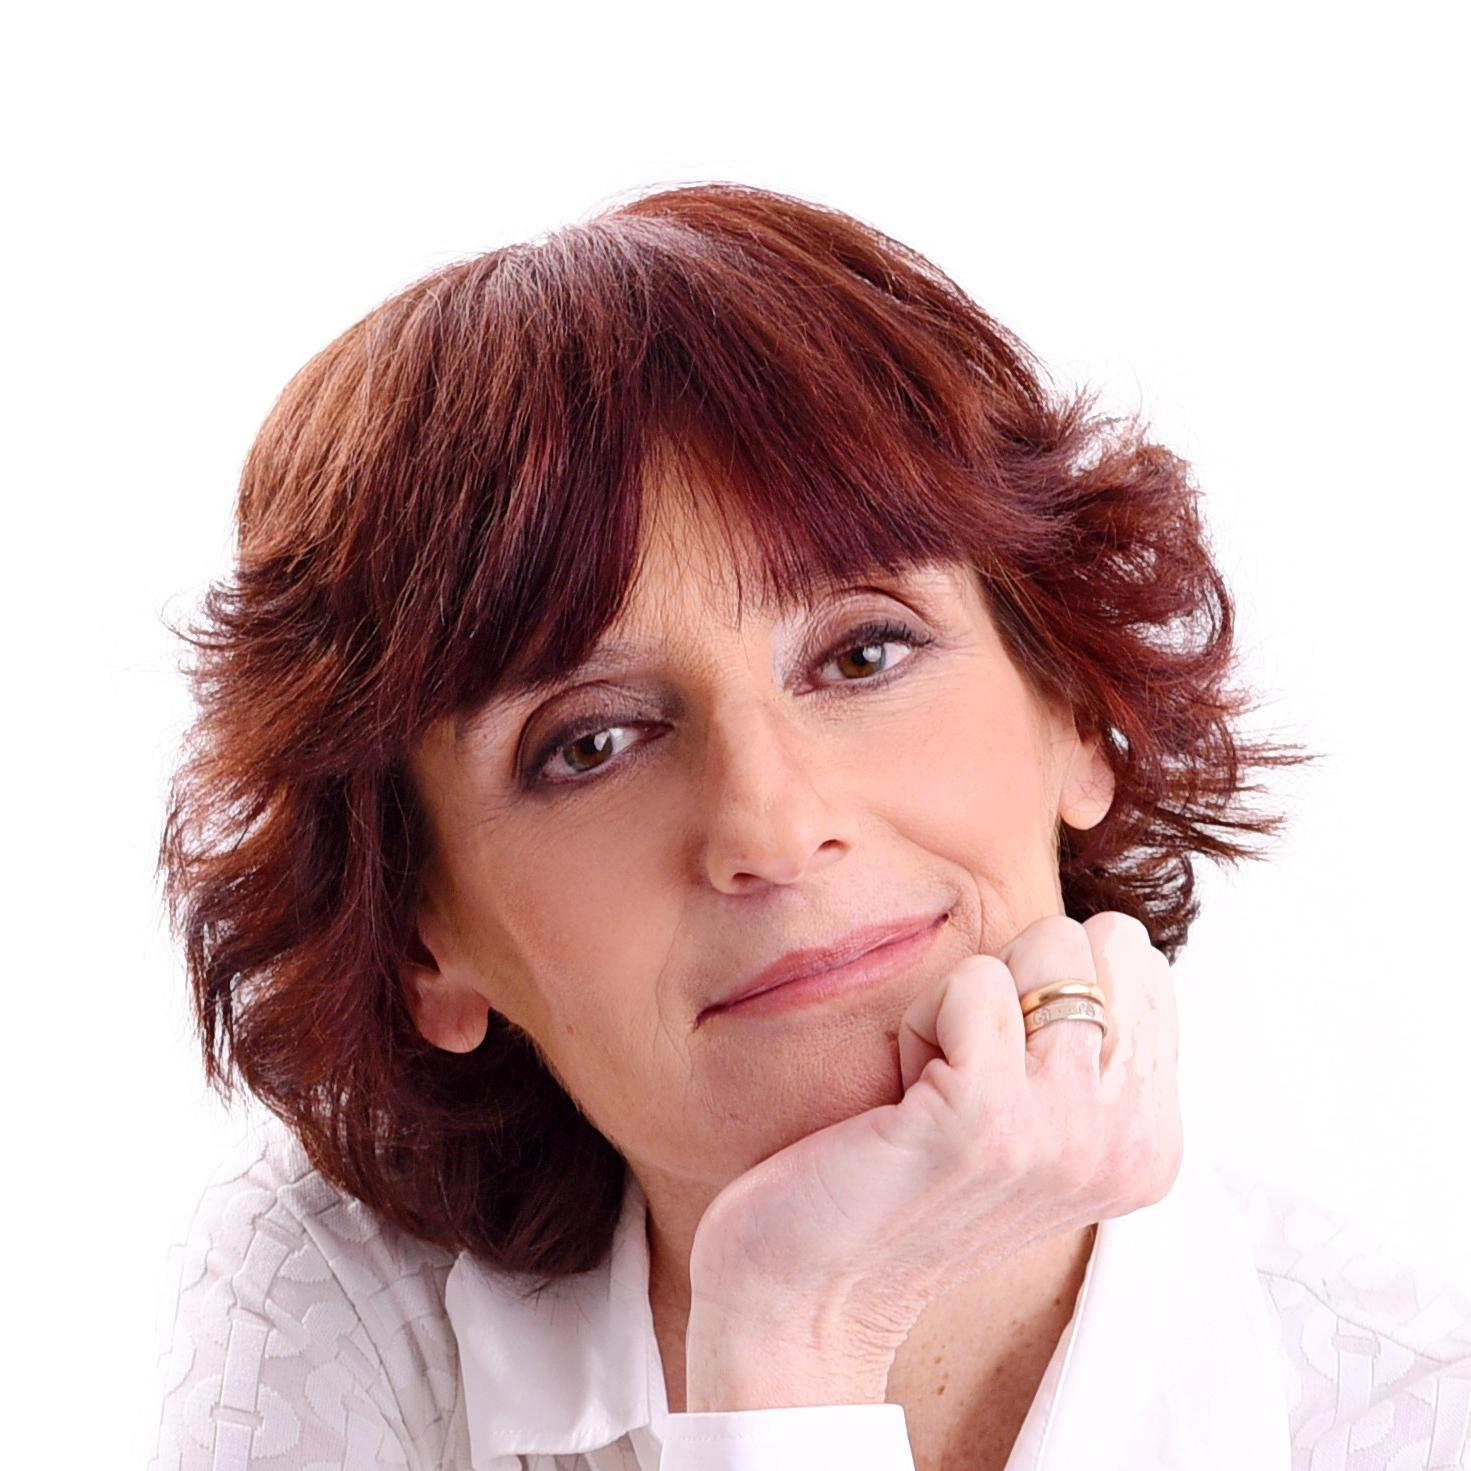 Luisa Boscolo  is a local tour guide for Turin (Italy)